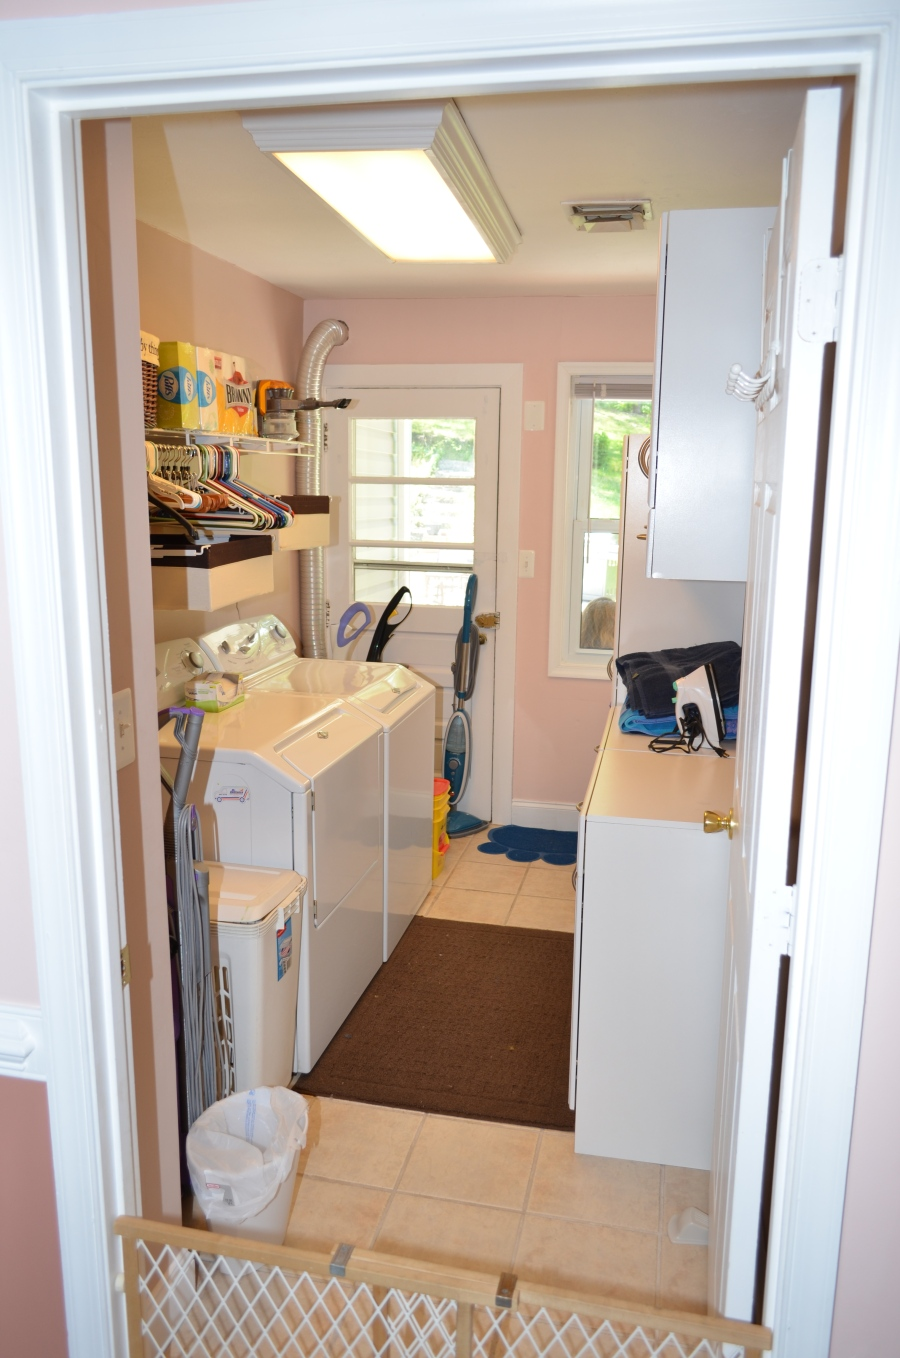 Entry level laundry room.